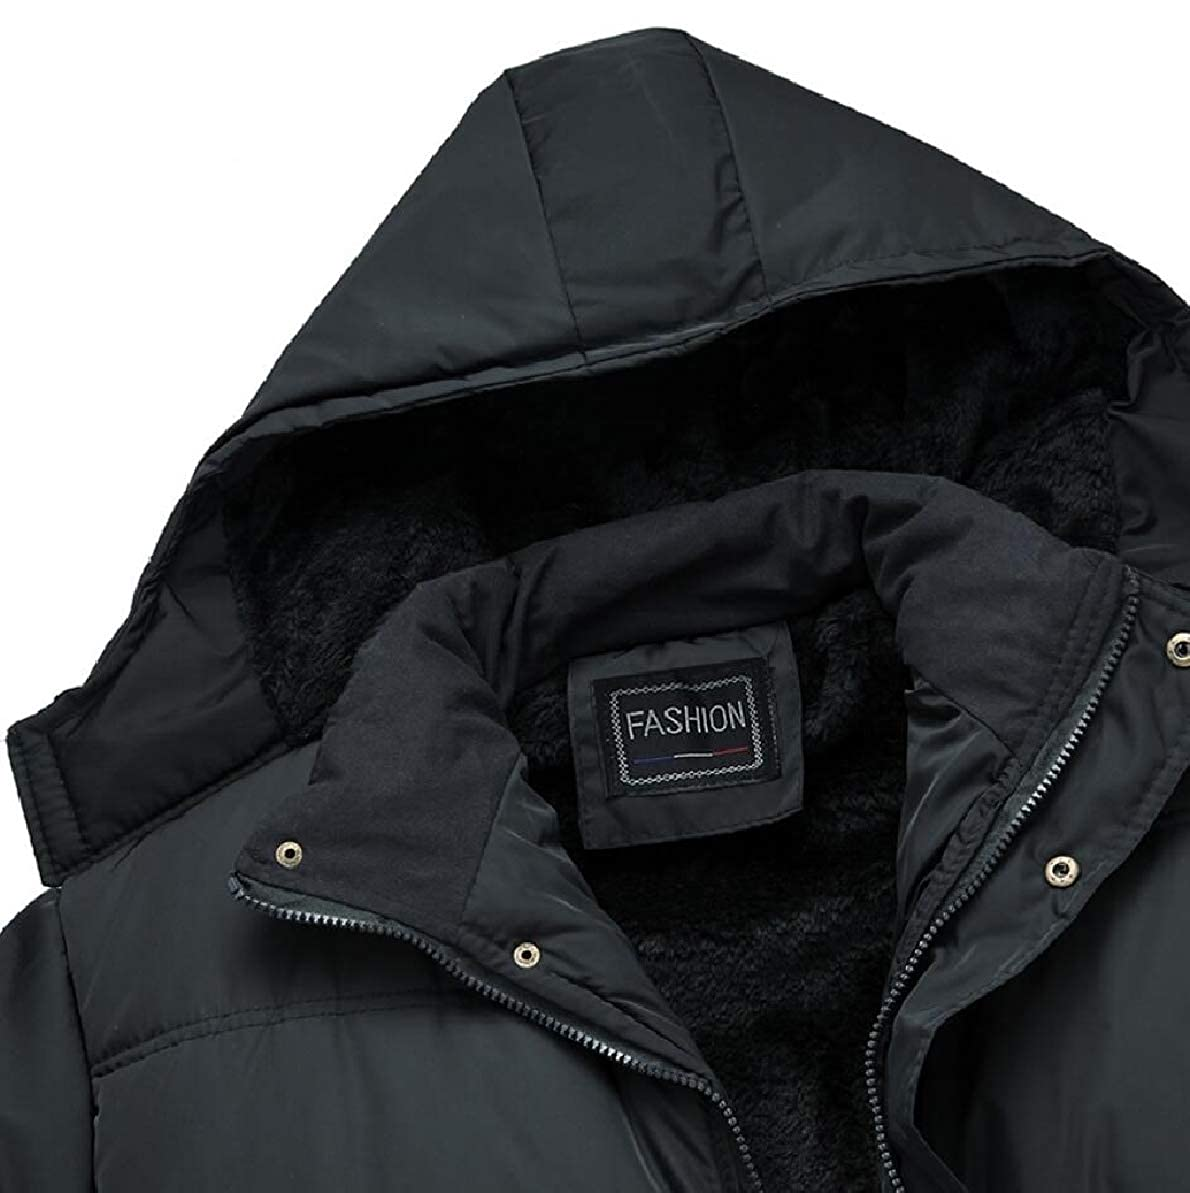 FLCH+YIGE Mens Warm Winter Quilted Outwear Thicken with Hood Fleece Down Jacket Coat